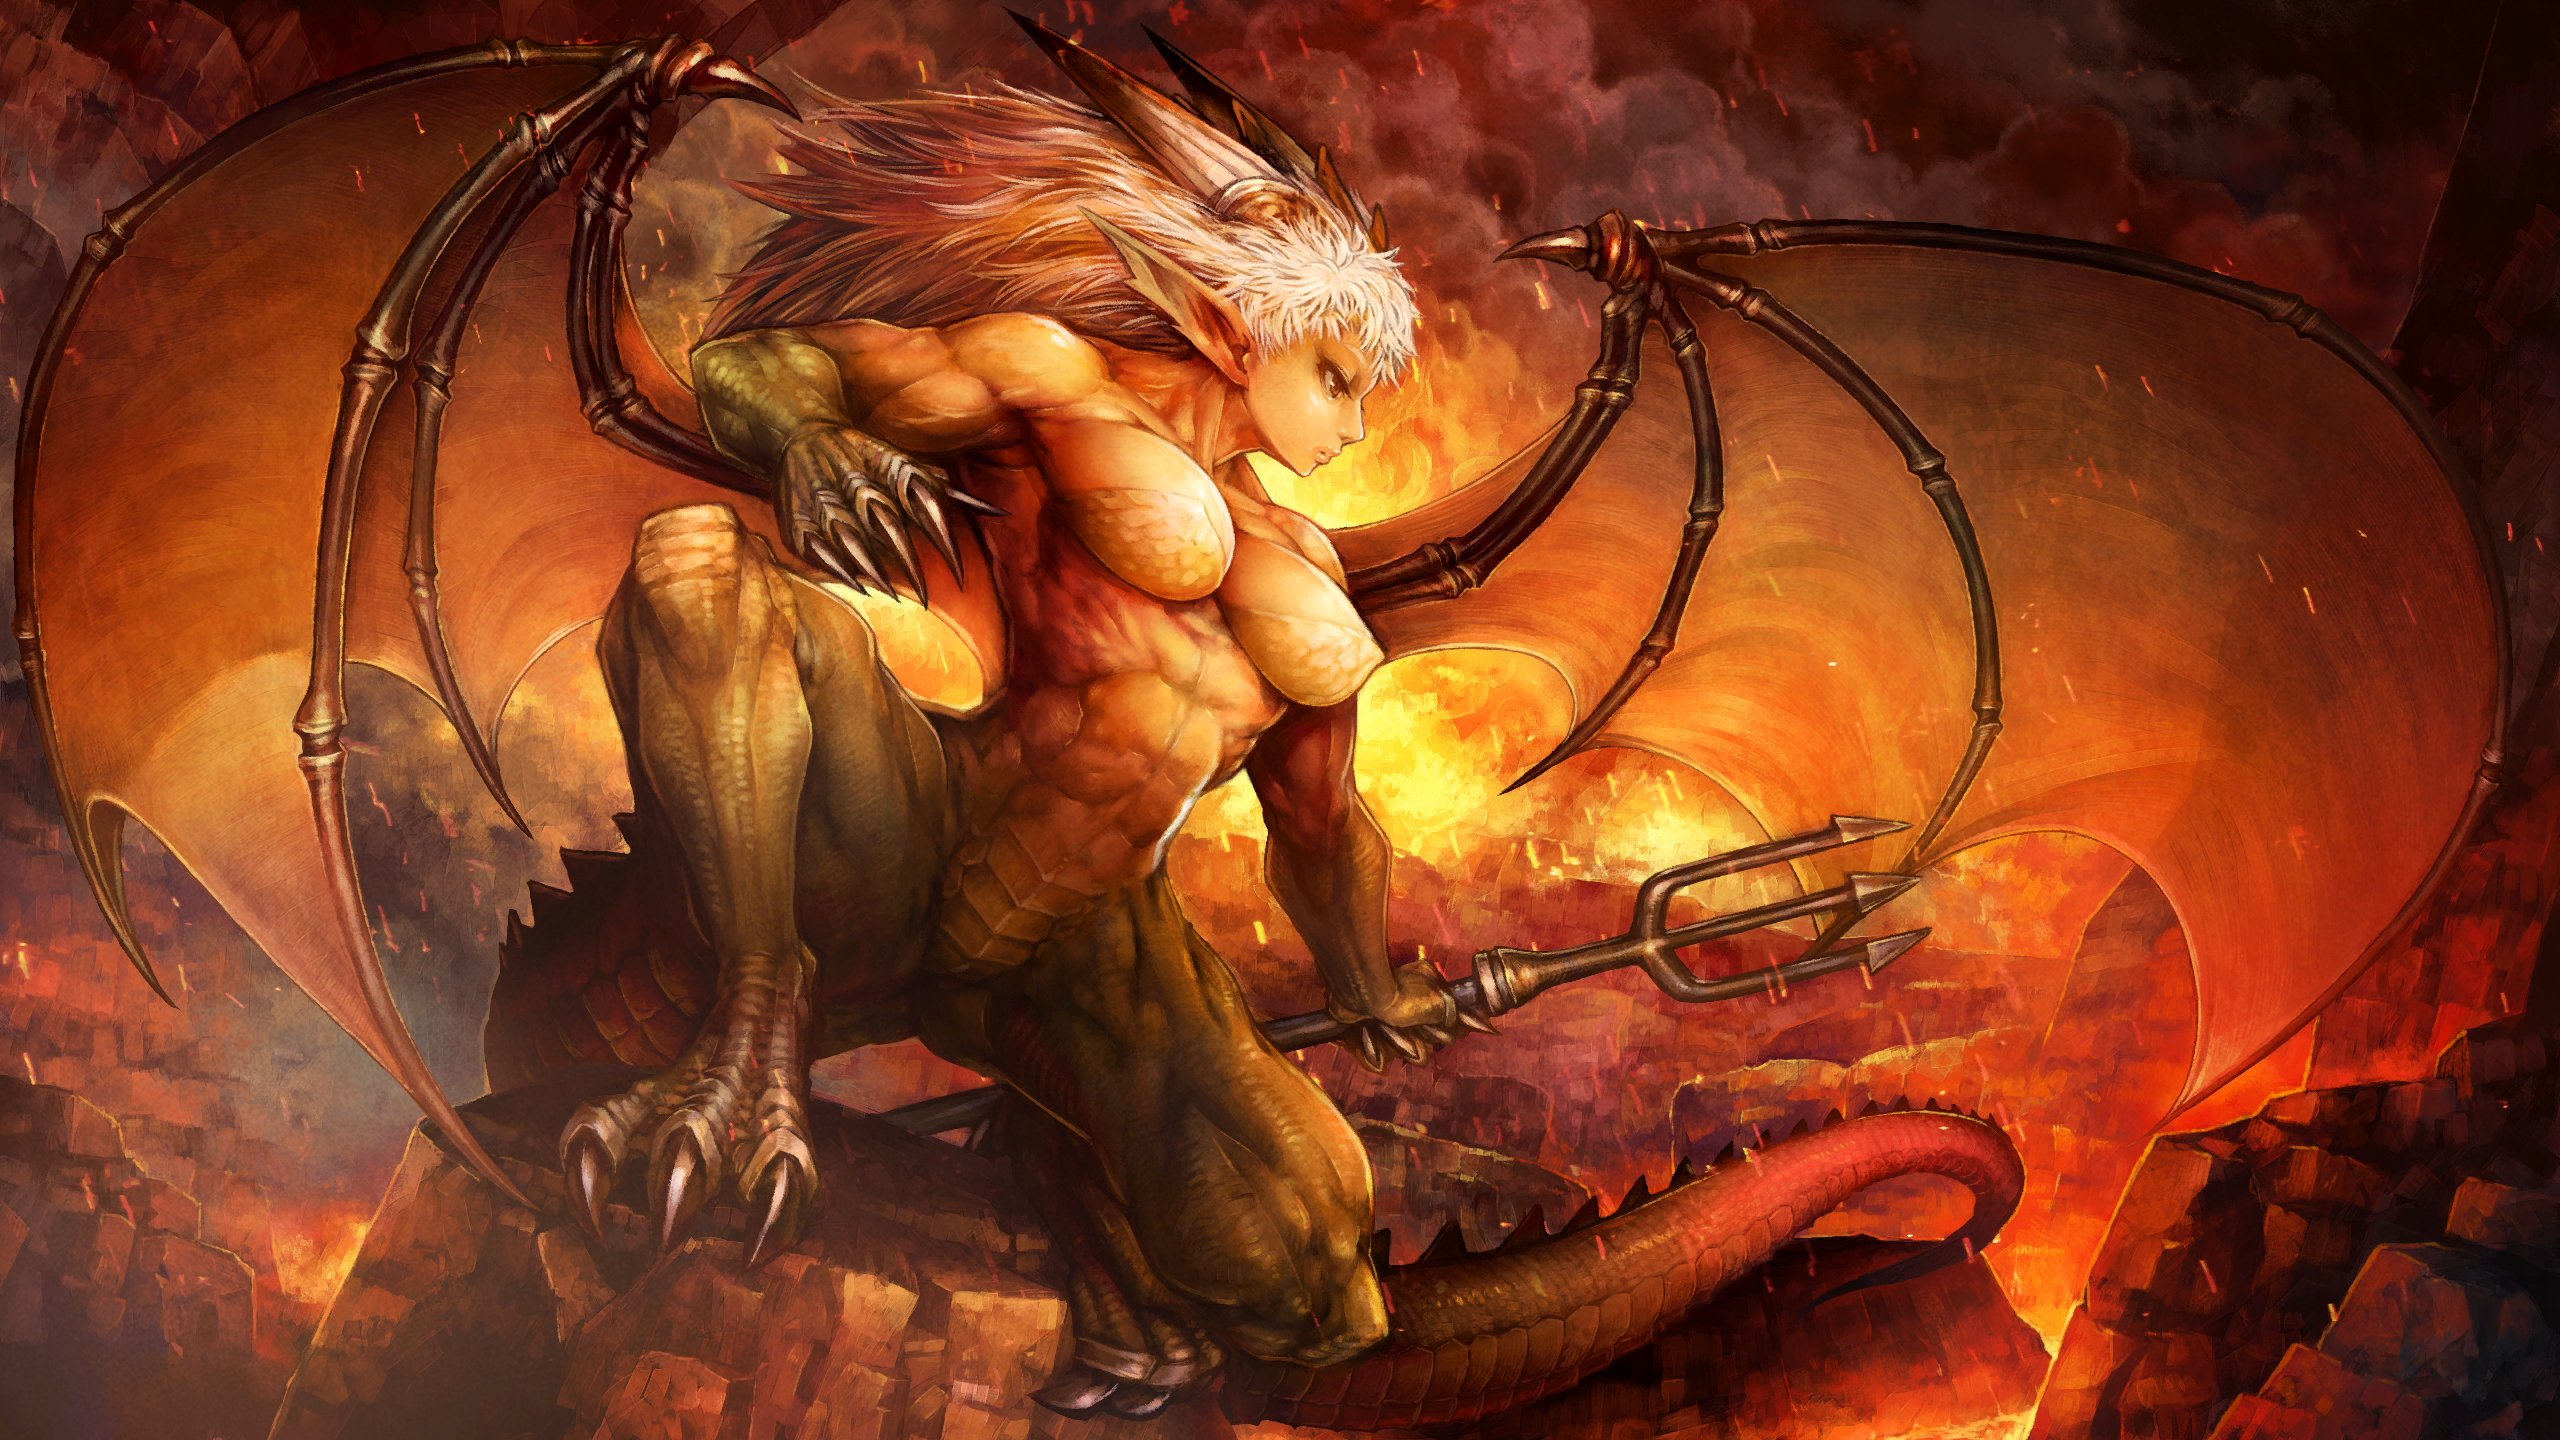 DRAGONS CROWN Anime Action Rpg Fantasy Family Medieval Fighting Dragons Crown 2 Wallpaper